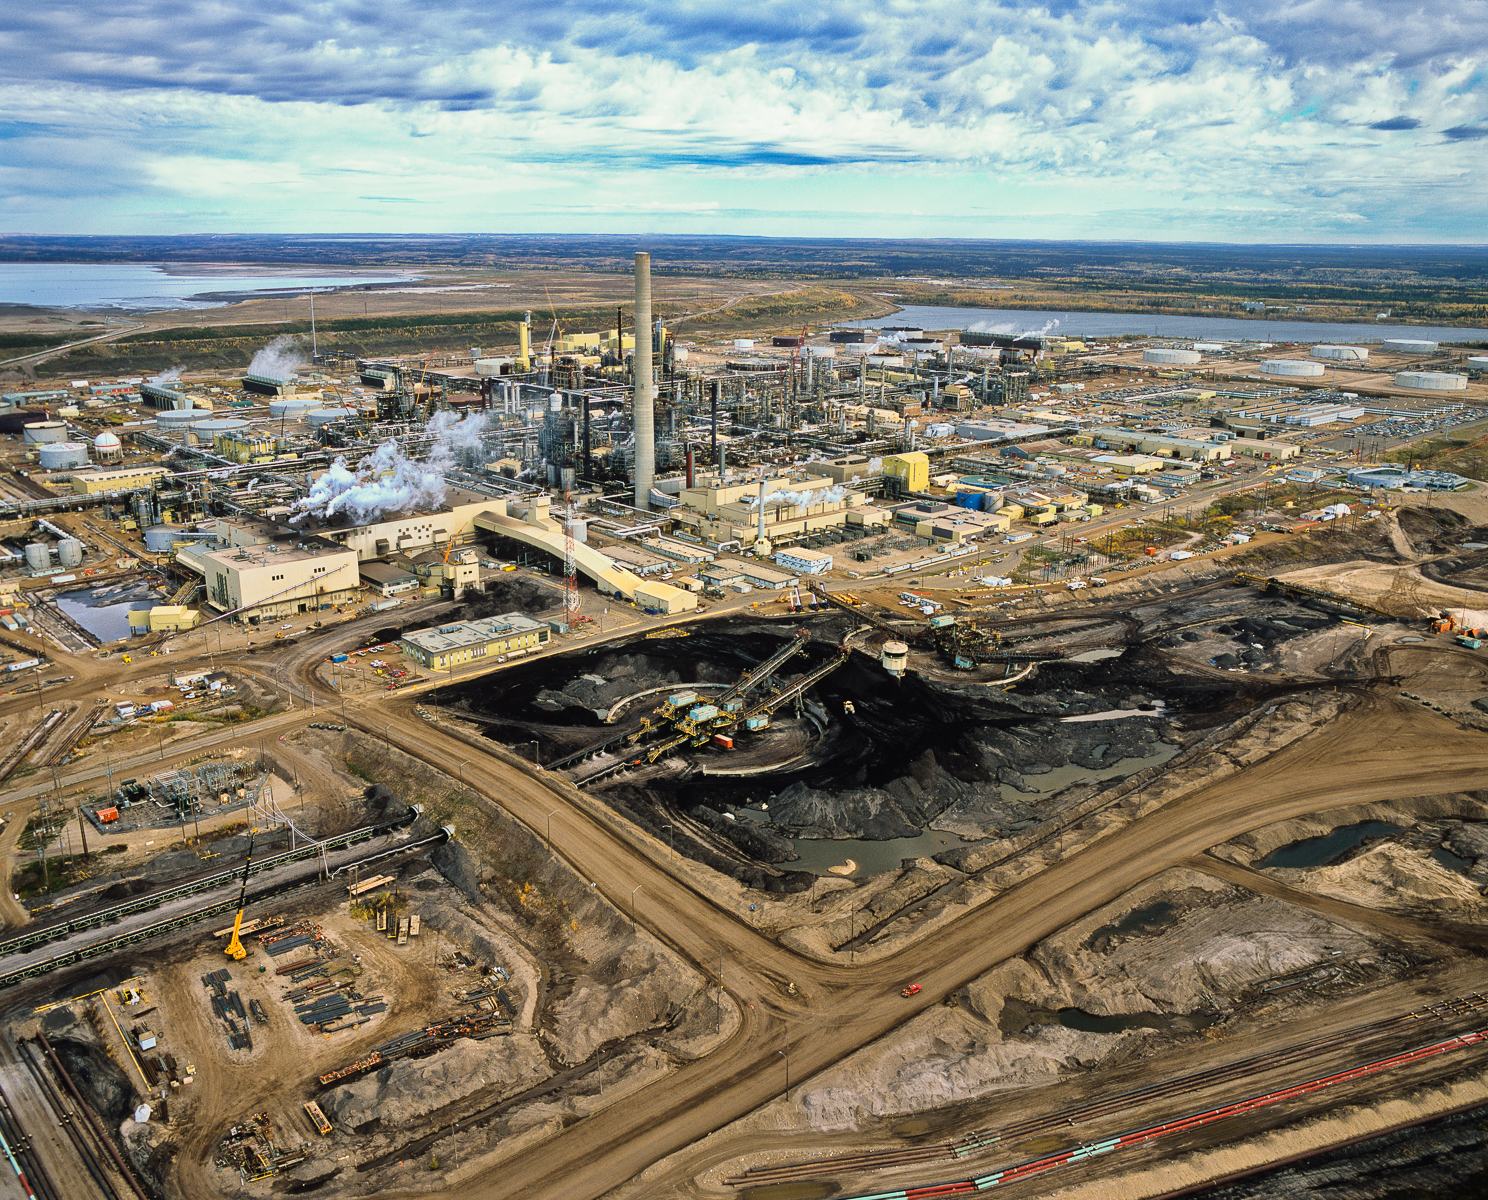 The refining or upgrading of the tarry bitumen which lies under the the boreal forests and wetlands of Northern Alberta consumes more water and energy than conventional oil production and produces more carbon. Each barrel of oil requires 3-5 barrels of fresh water from the neighboring Athabasca River. About 90% of this is returned as toxic tailings into the vast unlined tailings ponds that dot the landscape.